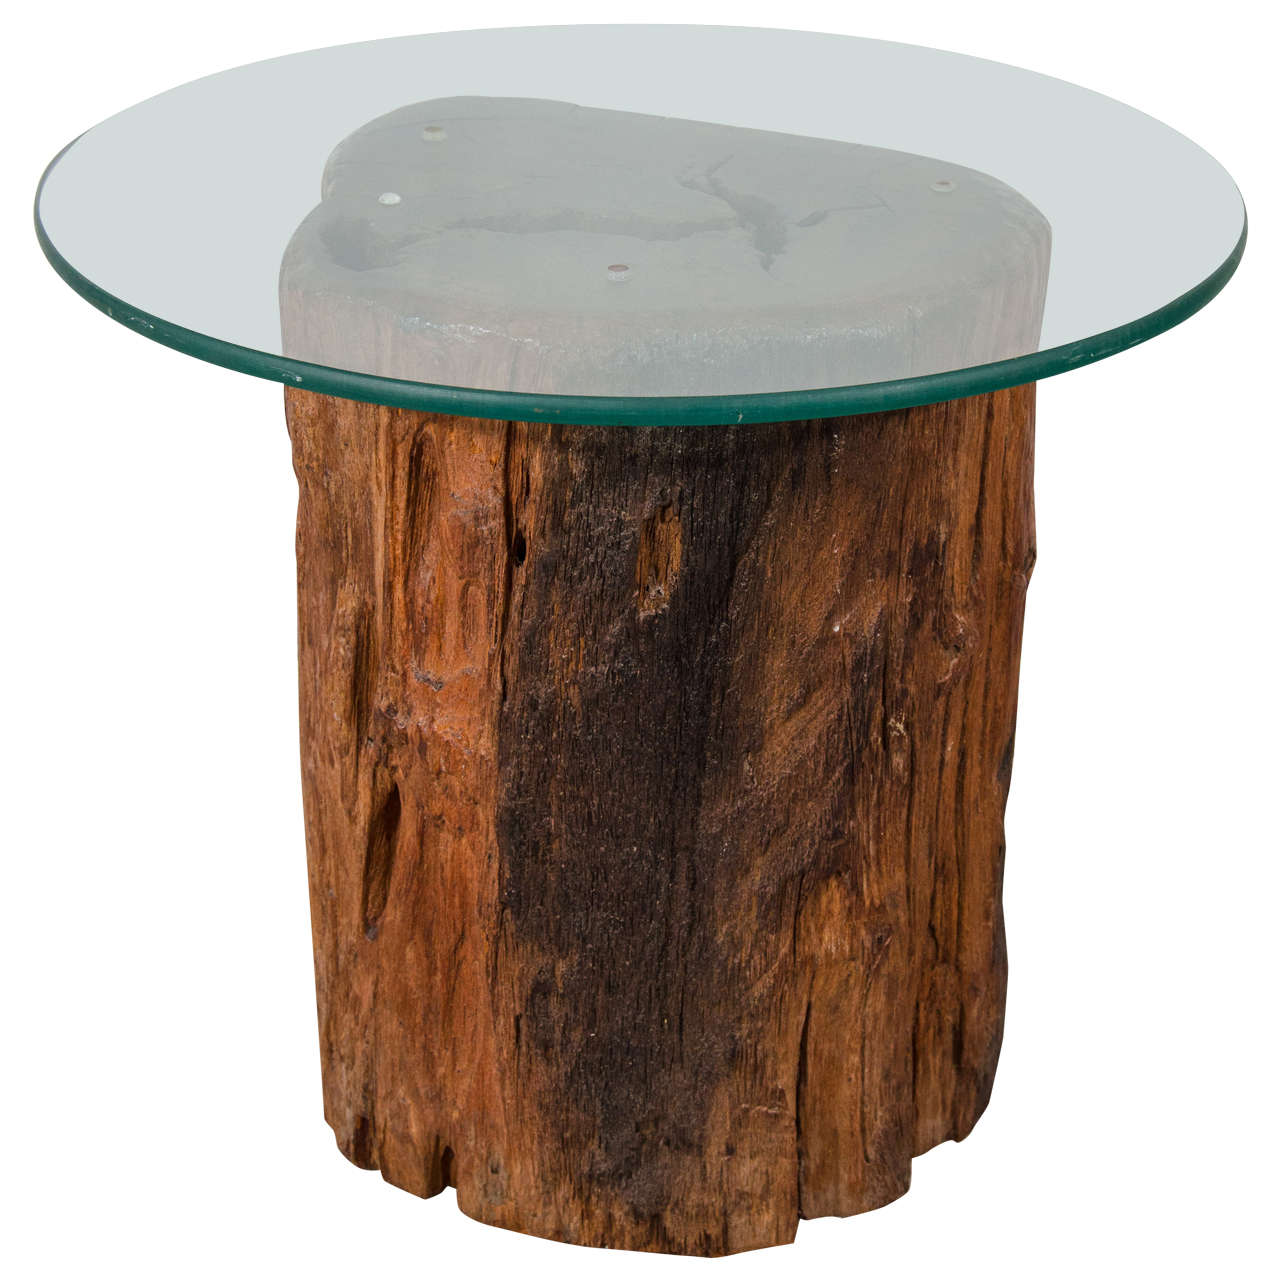 antique petrified tree trunk side table with glass top wood accent trestle vintage inspired couch wine holder bath and beyond instant pot furniture tulsa perspex coffee pub tops